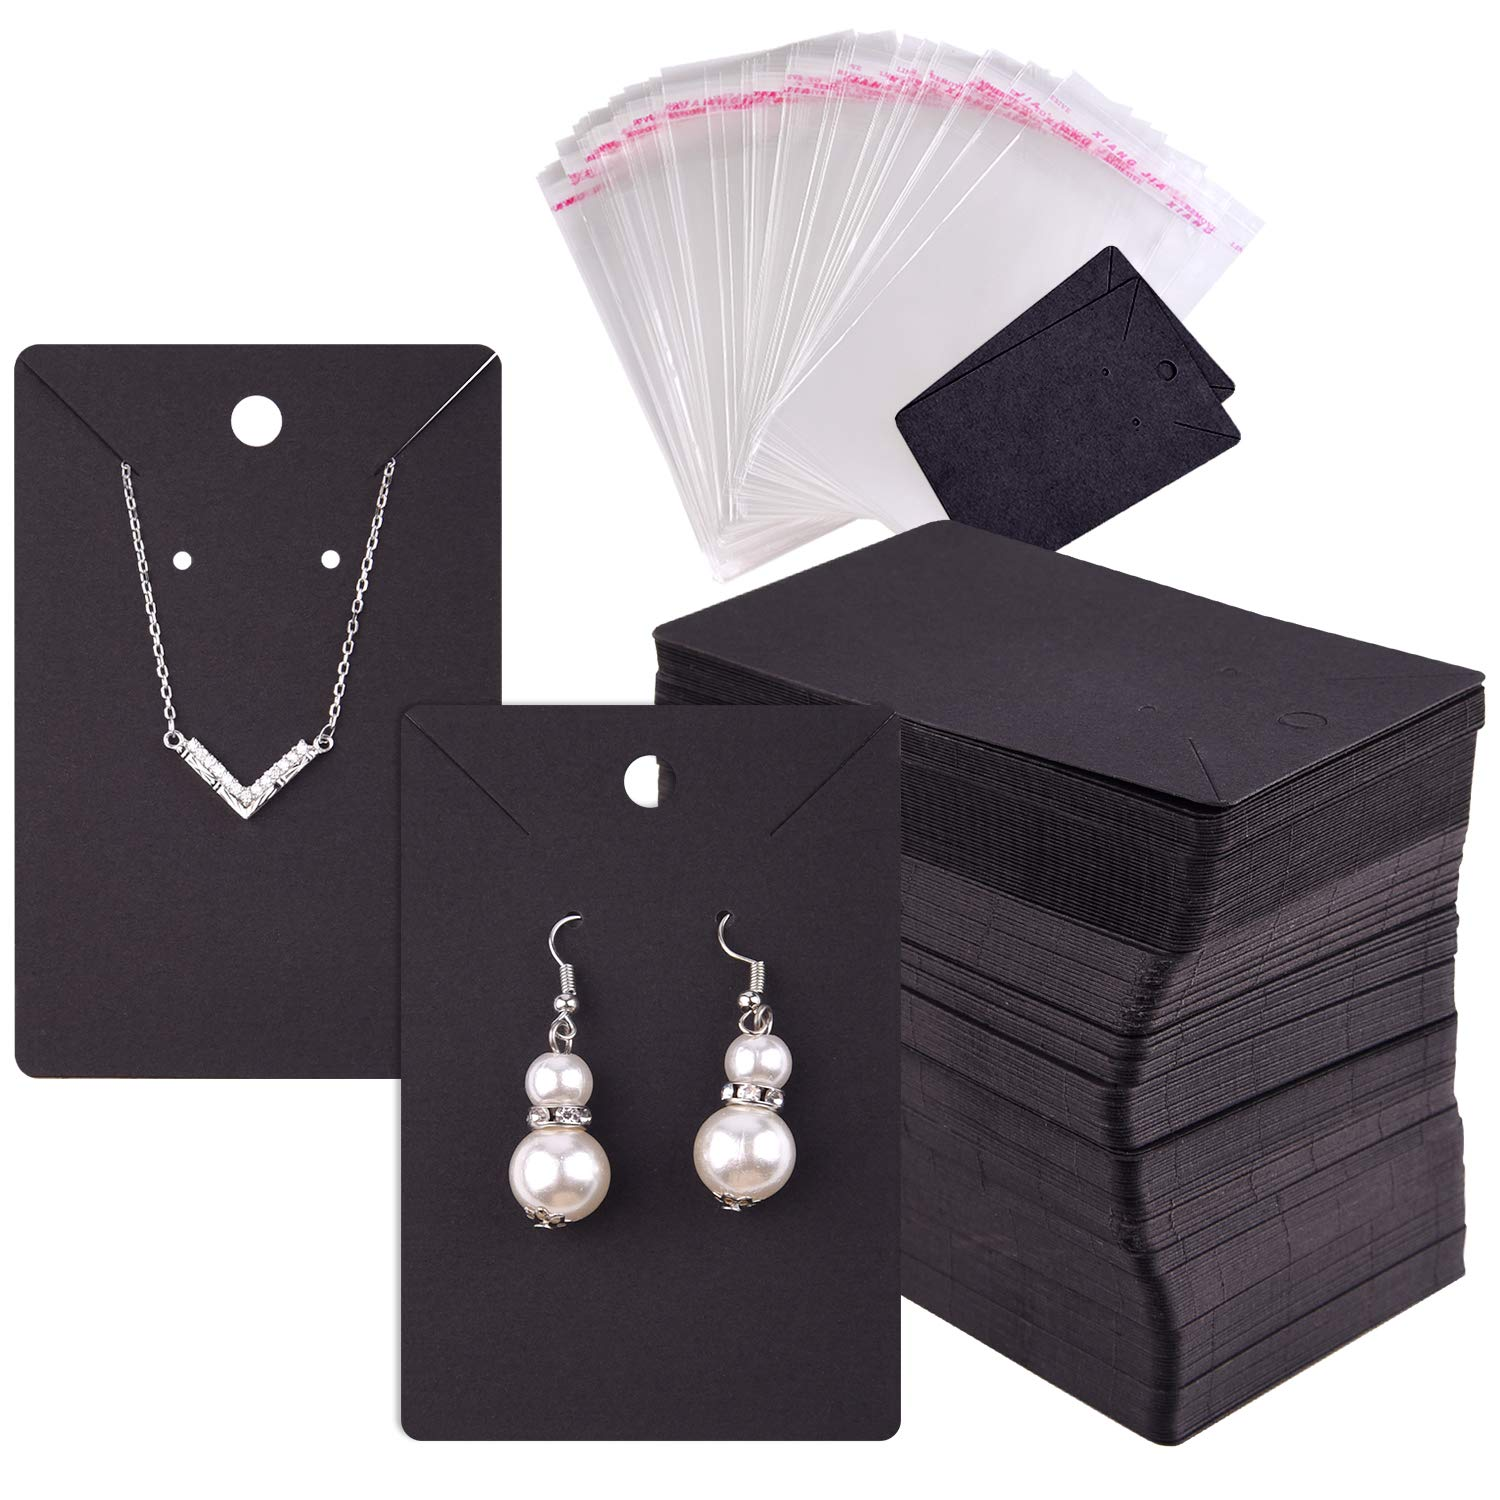 Tuparka 120 Pcs Earring Display Card Necklace Display Cards With120pcs Self Seal Bags Earring Card Holder Blank Kraft Paper Tags For Diy Ear Studs